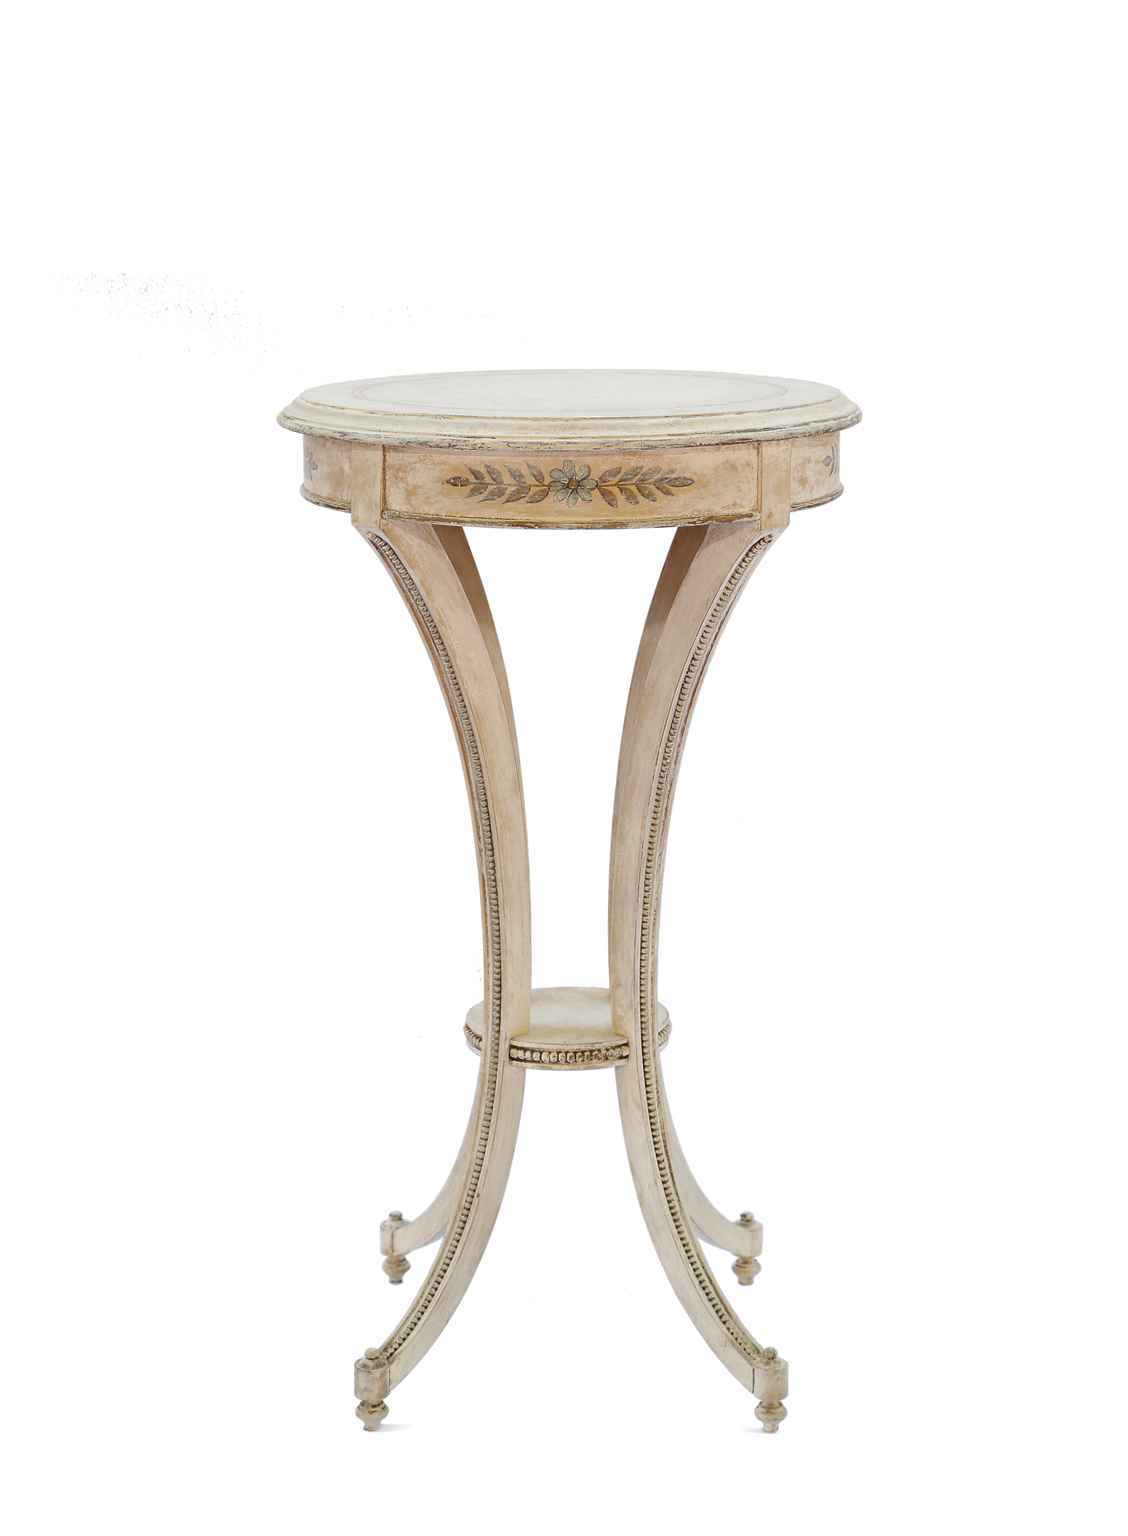 painted candlestand accent table james jeffrey antiques wood italian mirrored end big umbrellas for shade outdoor folding dale tiffany ceiling lamps trestle purchase small tables